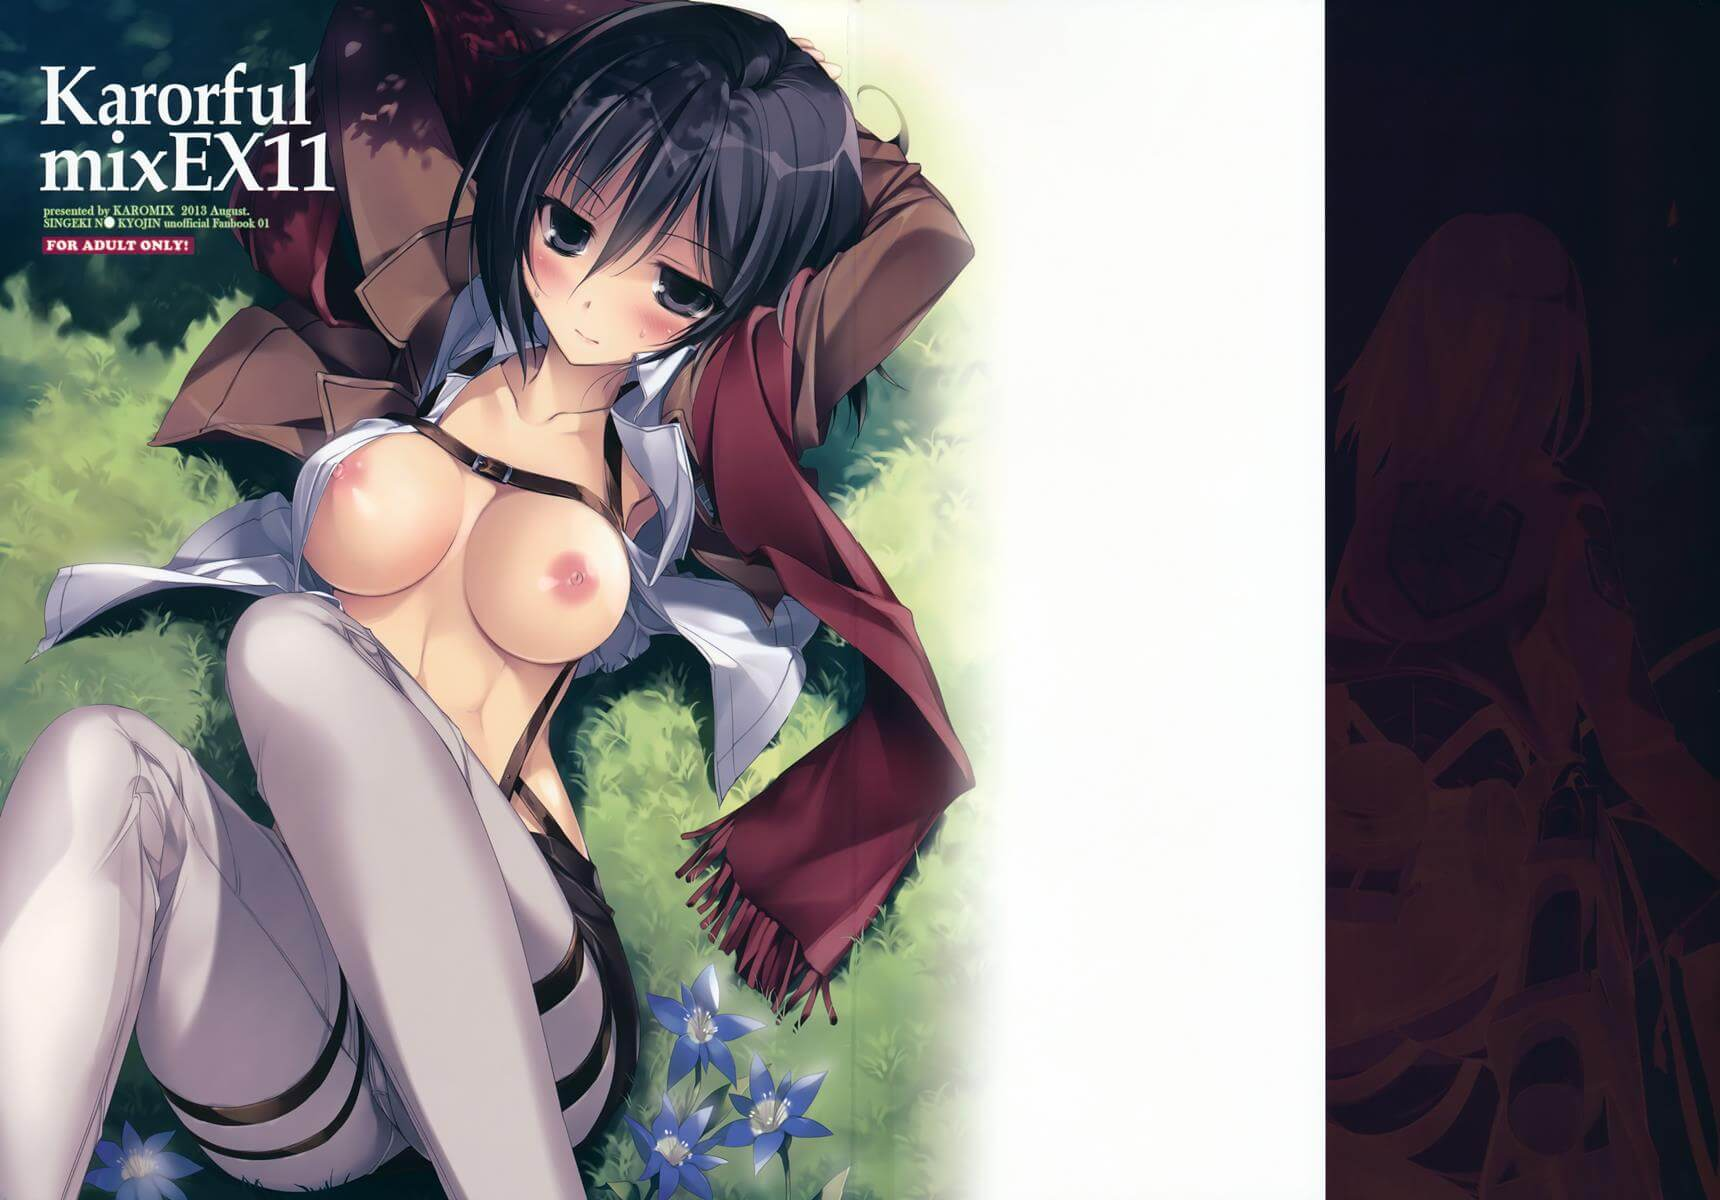 進撃的巨人 進撃の巨人 Attack on Titan Karorful mix EX11 KAROMIX karory 艾倫·耶格 米卡莎 同人誌 Doujin Hentai 成人漫畫 H漫 色情同人